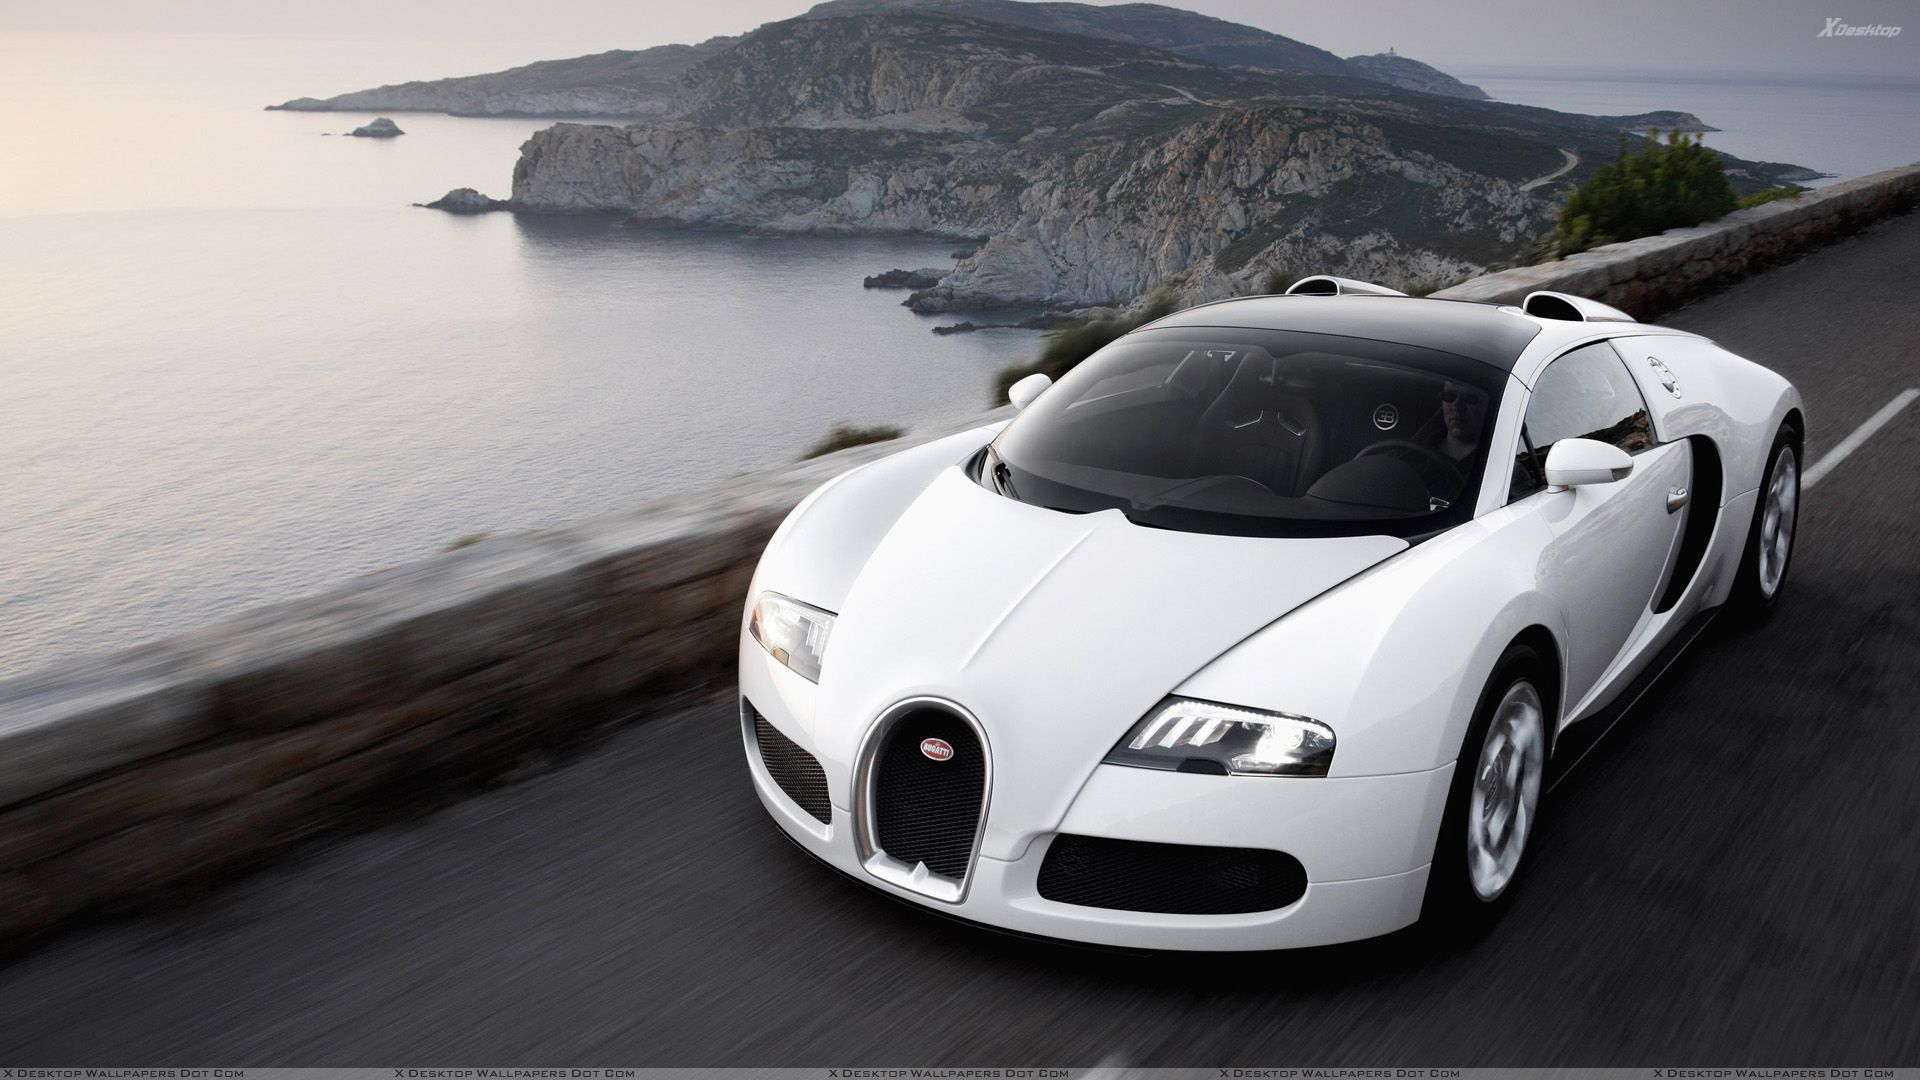 96b4498d32d7e3a67ab33ef94f311041 Exciting Bugatti Veyron Zero to Sixty Cars Trend